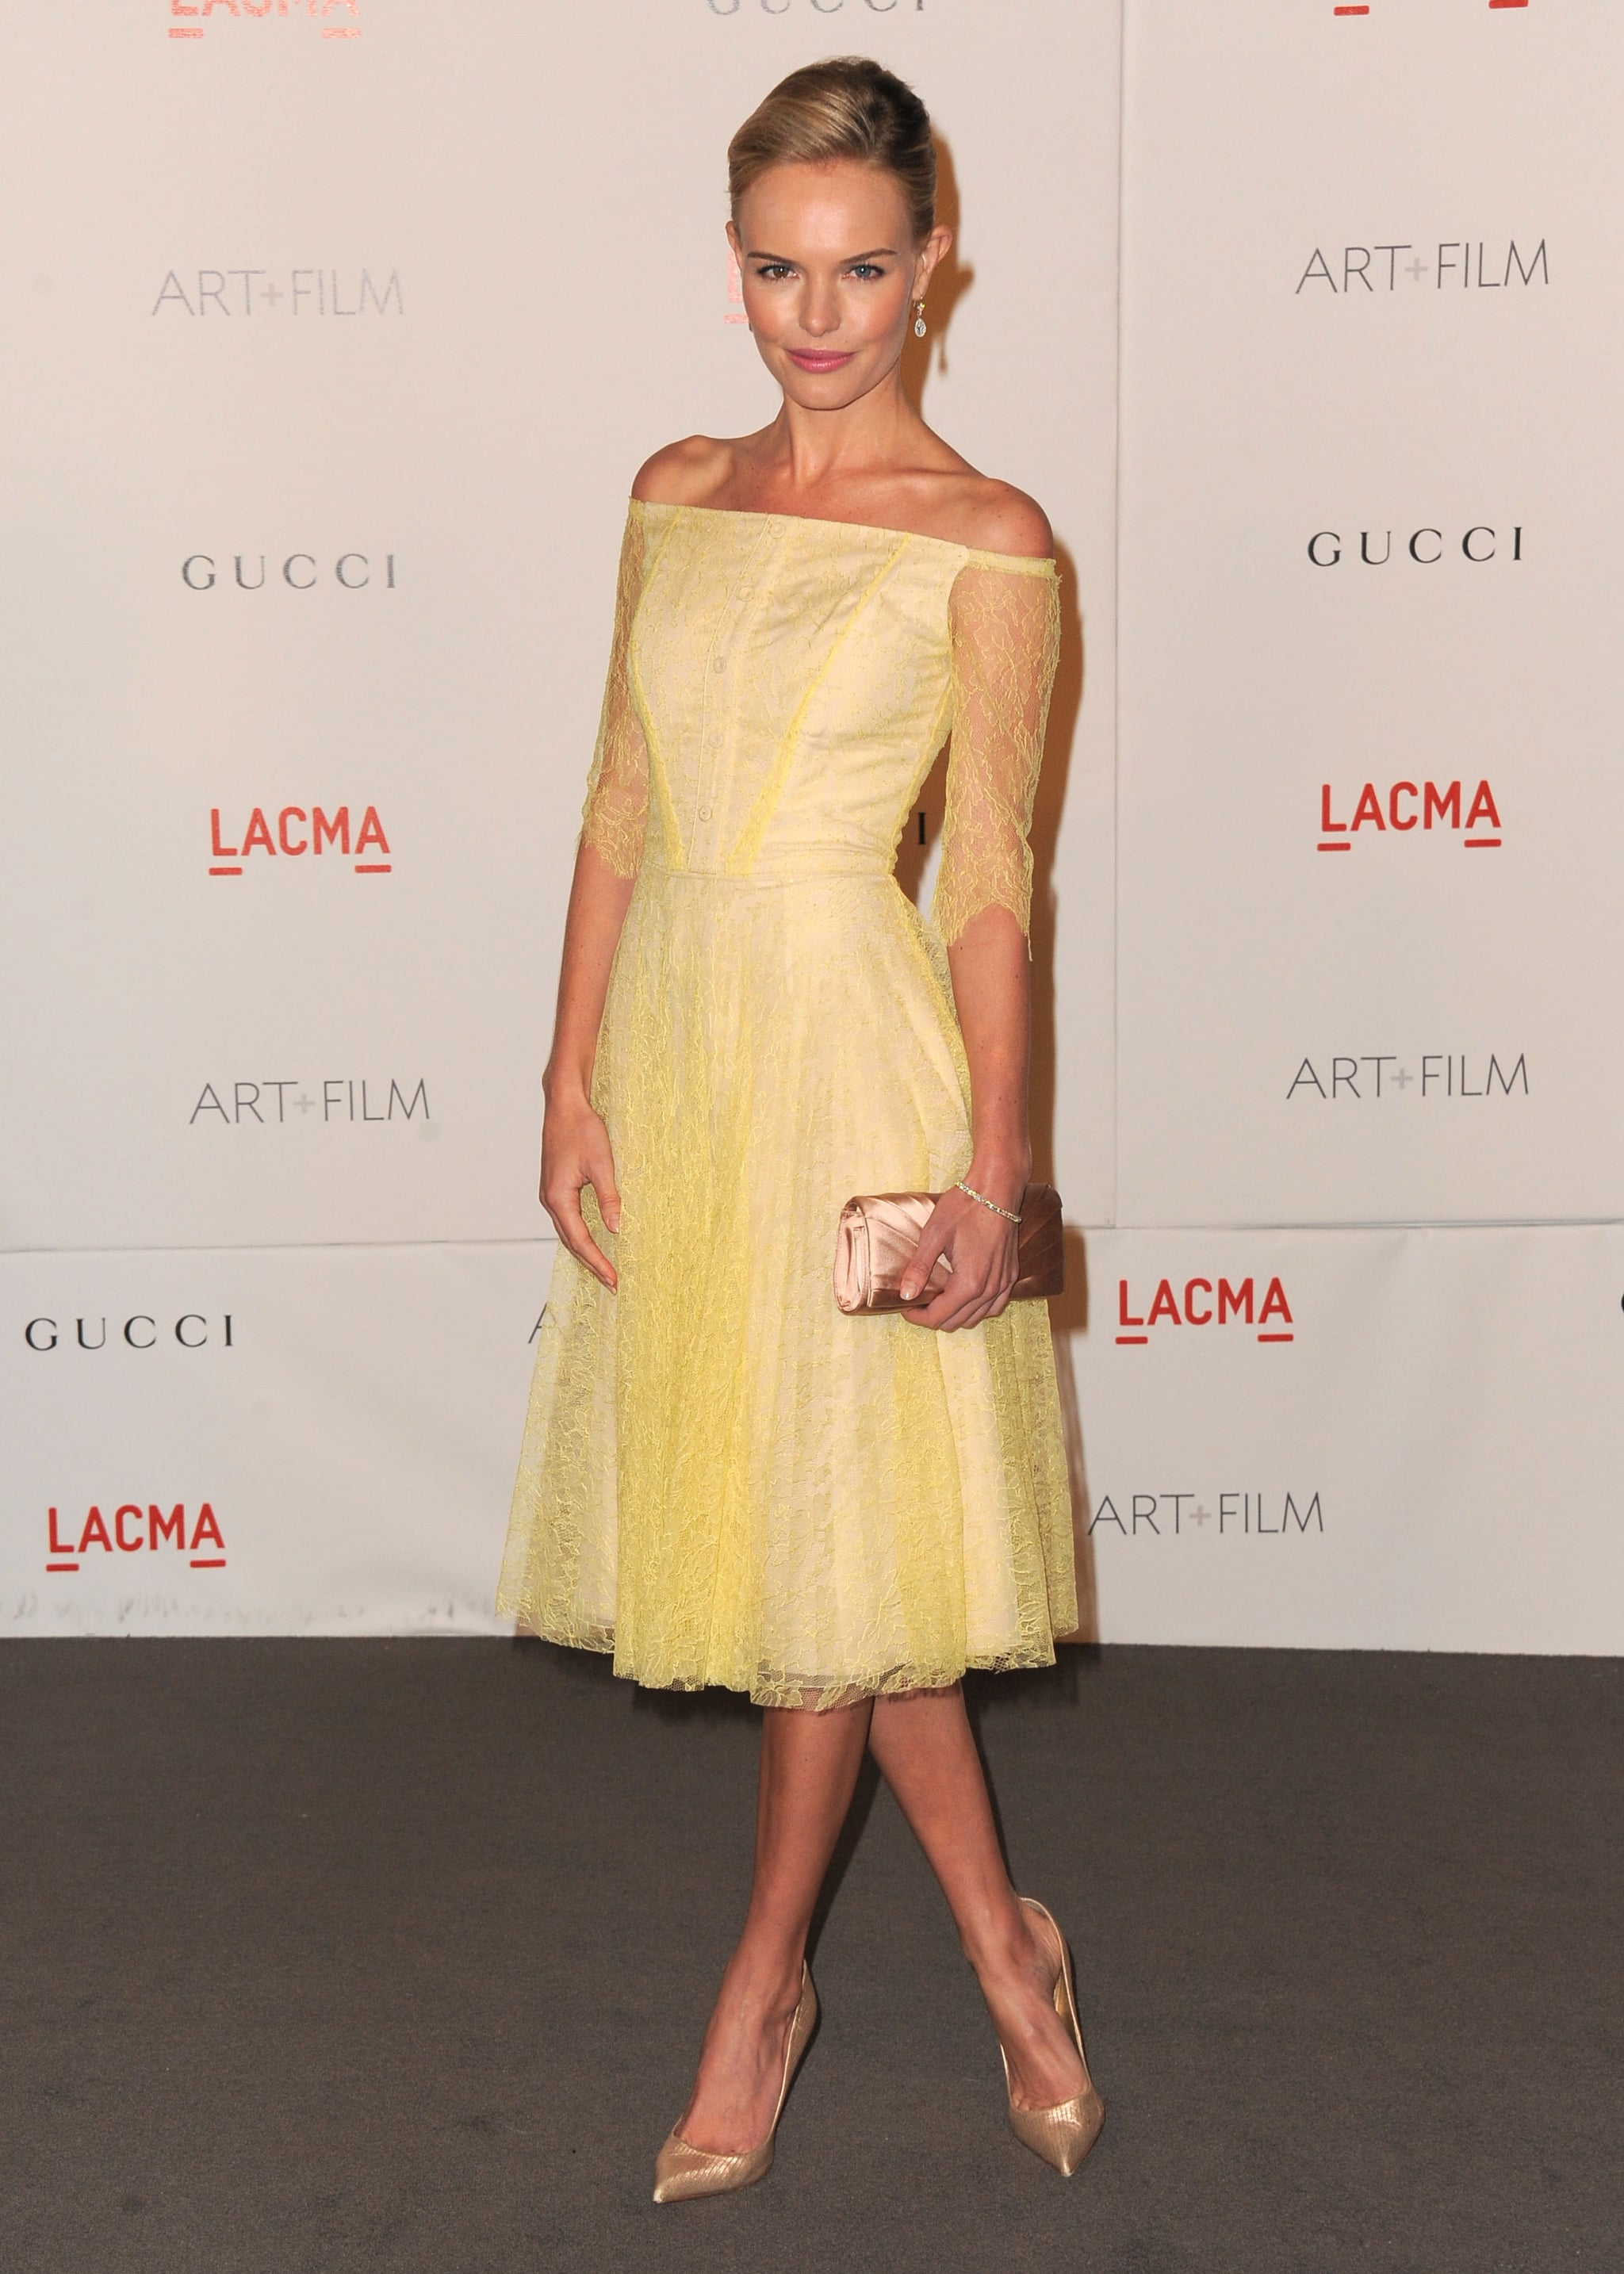 Kate Bosworth at a LACMA event.